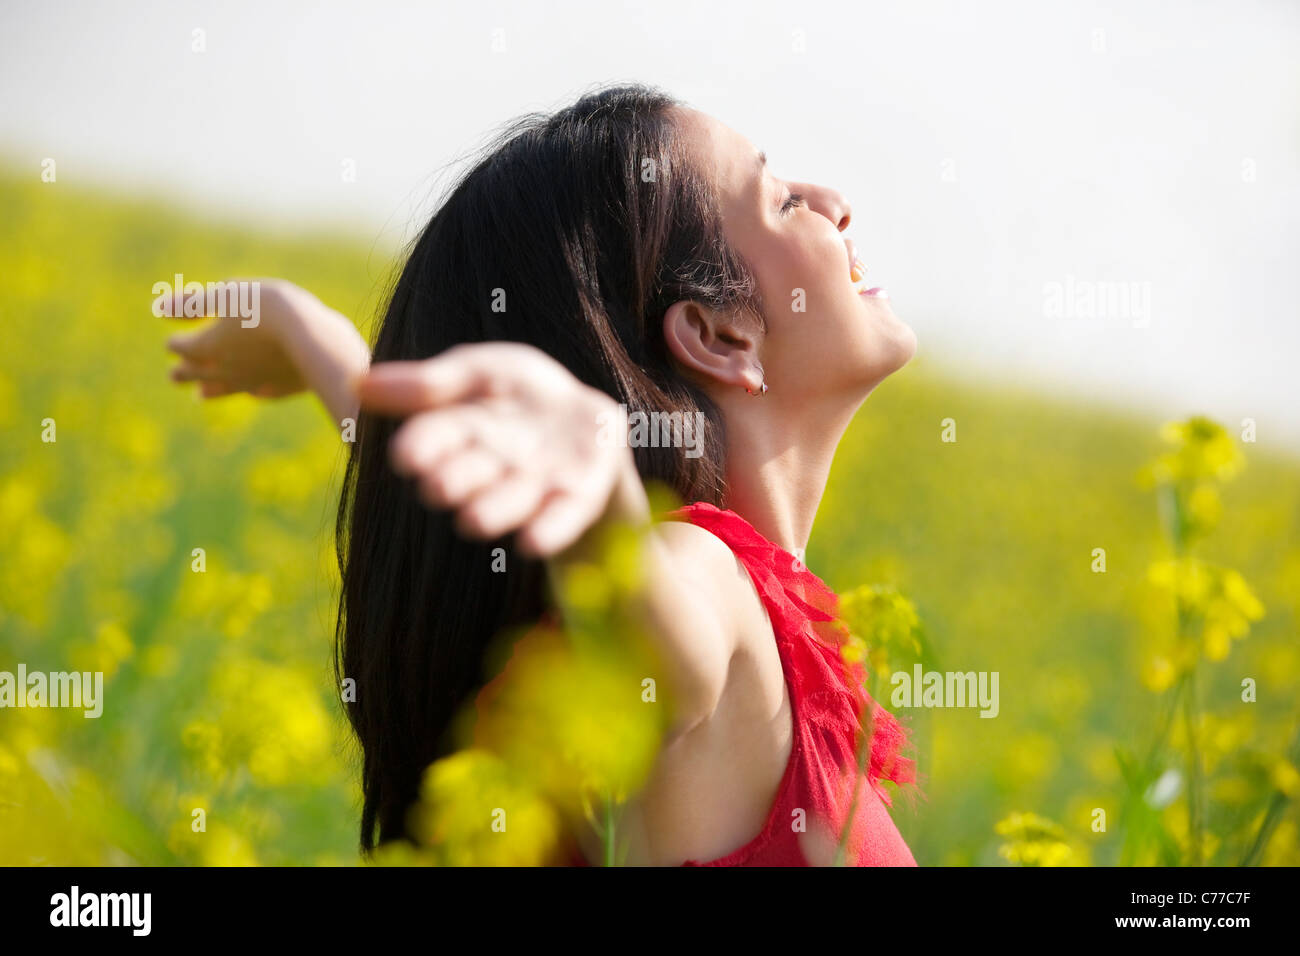 Young woman enjoying herself in a field - Stock Image